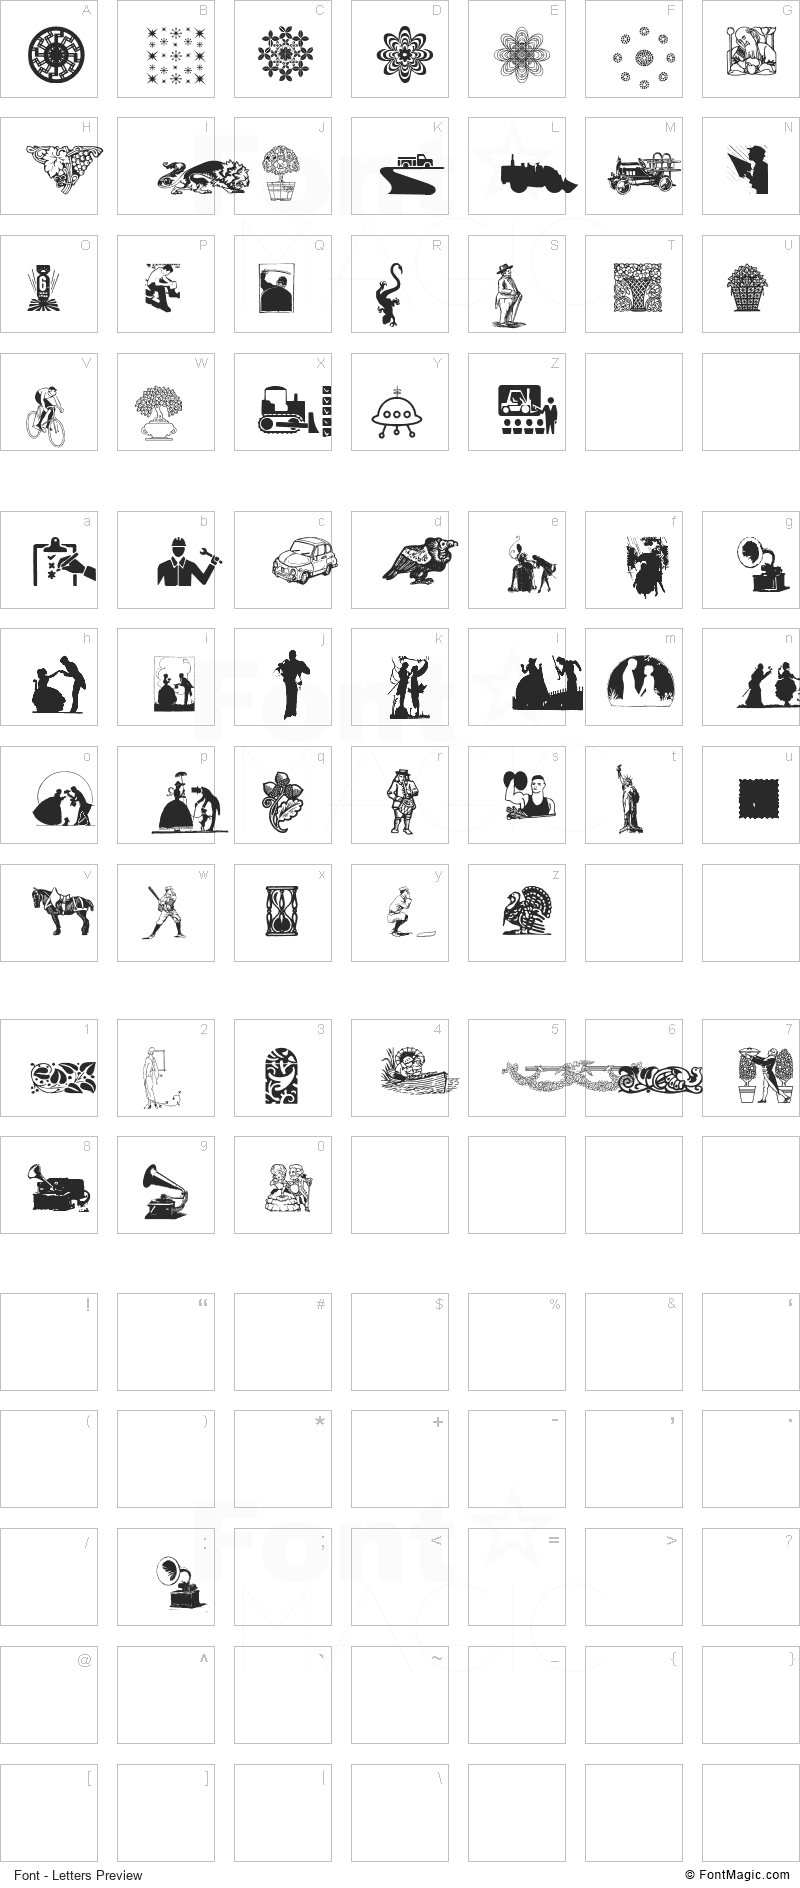 Random Dingbats Font - All Latters Preview Chart